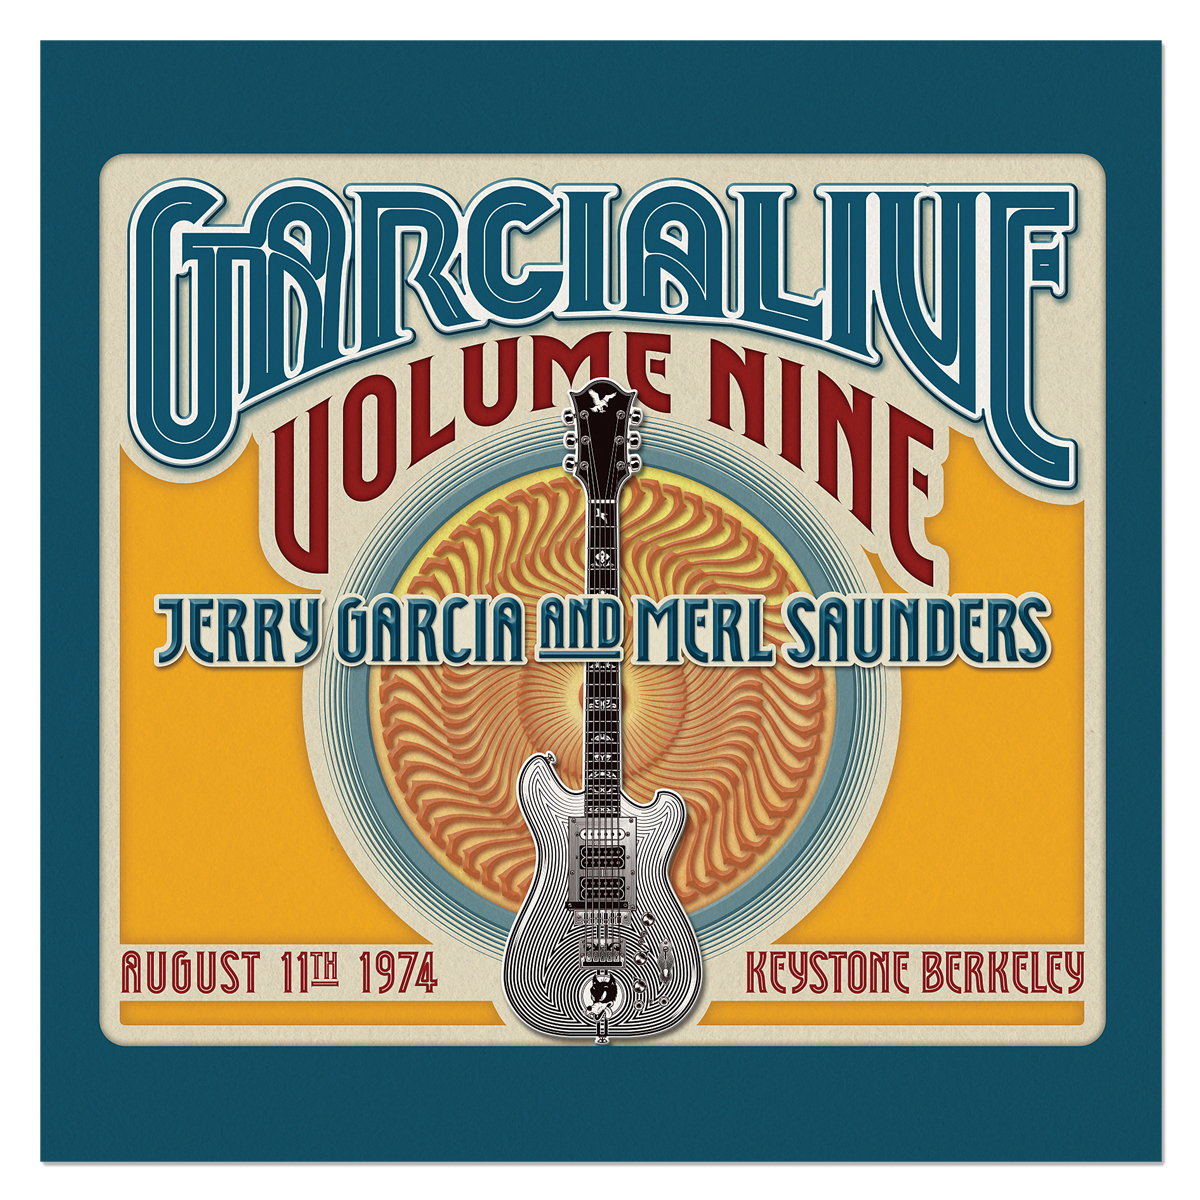 Jerry Garcia & Merl Saunders - GarciaLive Volume 9: 8/11/74 2-CD Set